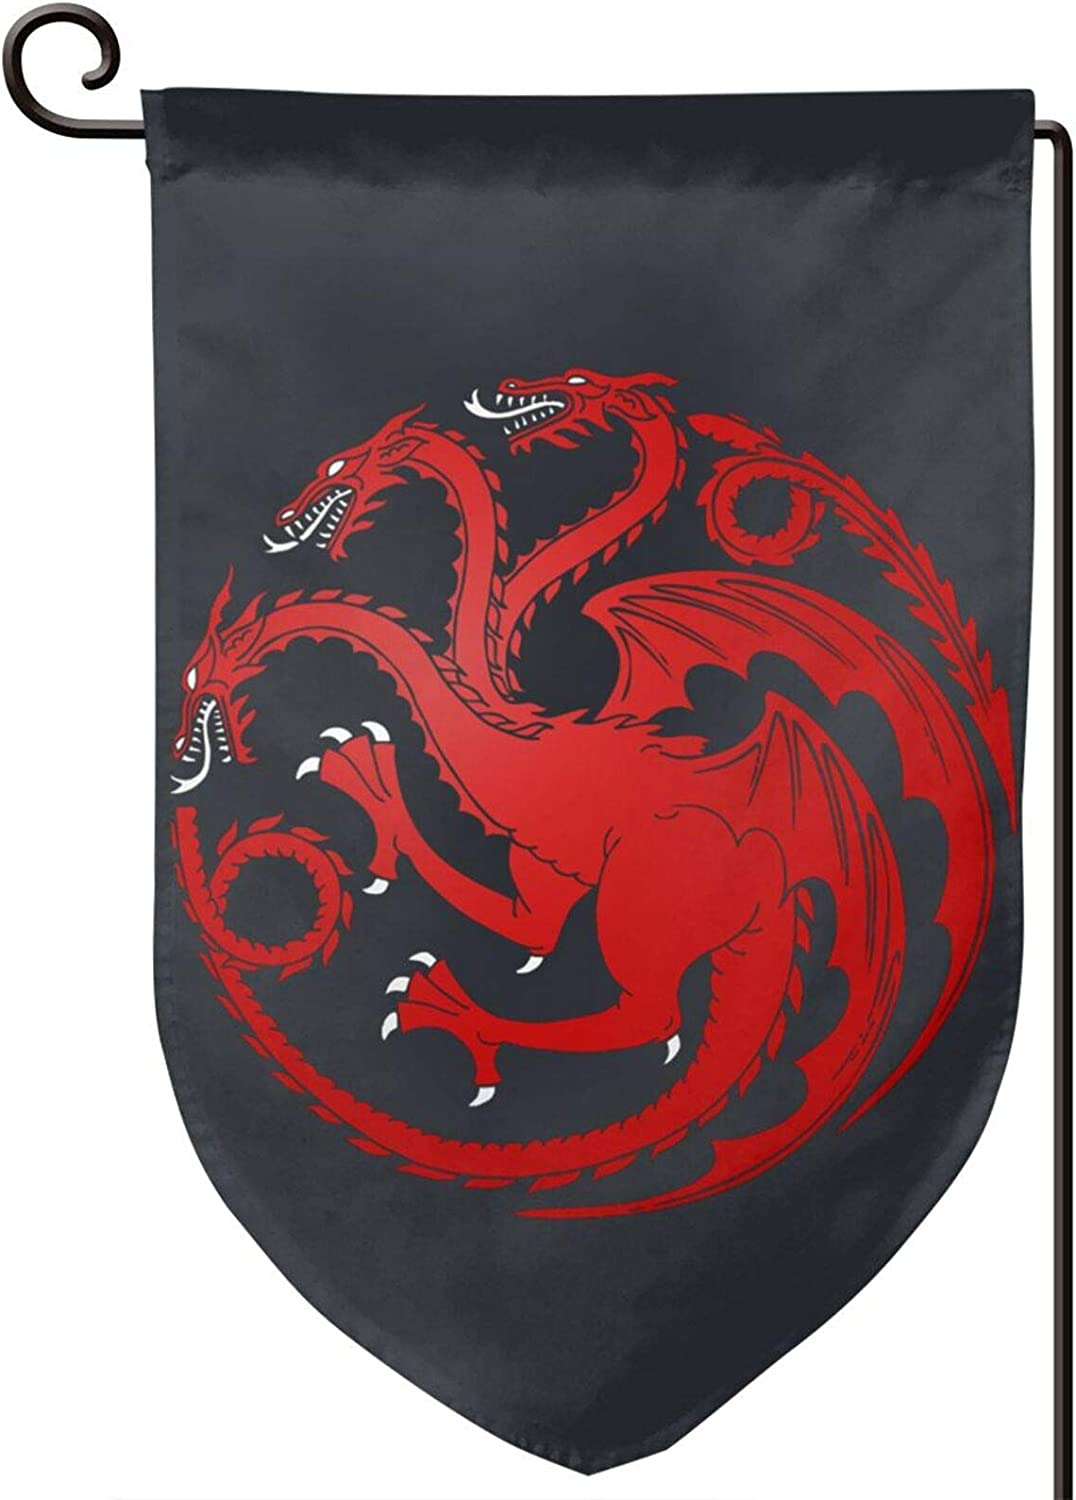 ETONKIDD House-Targaryen- Fire-Blood-Game-of-Thrones Welcome Garden Flag Double-Sized Print Decorative Holiday Home Flag